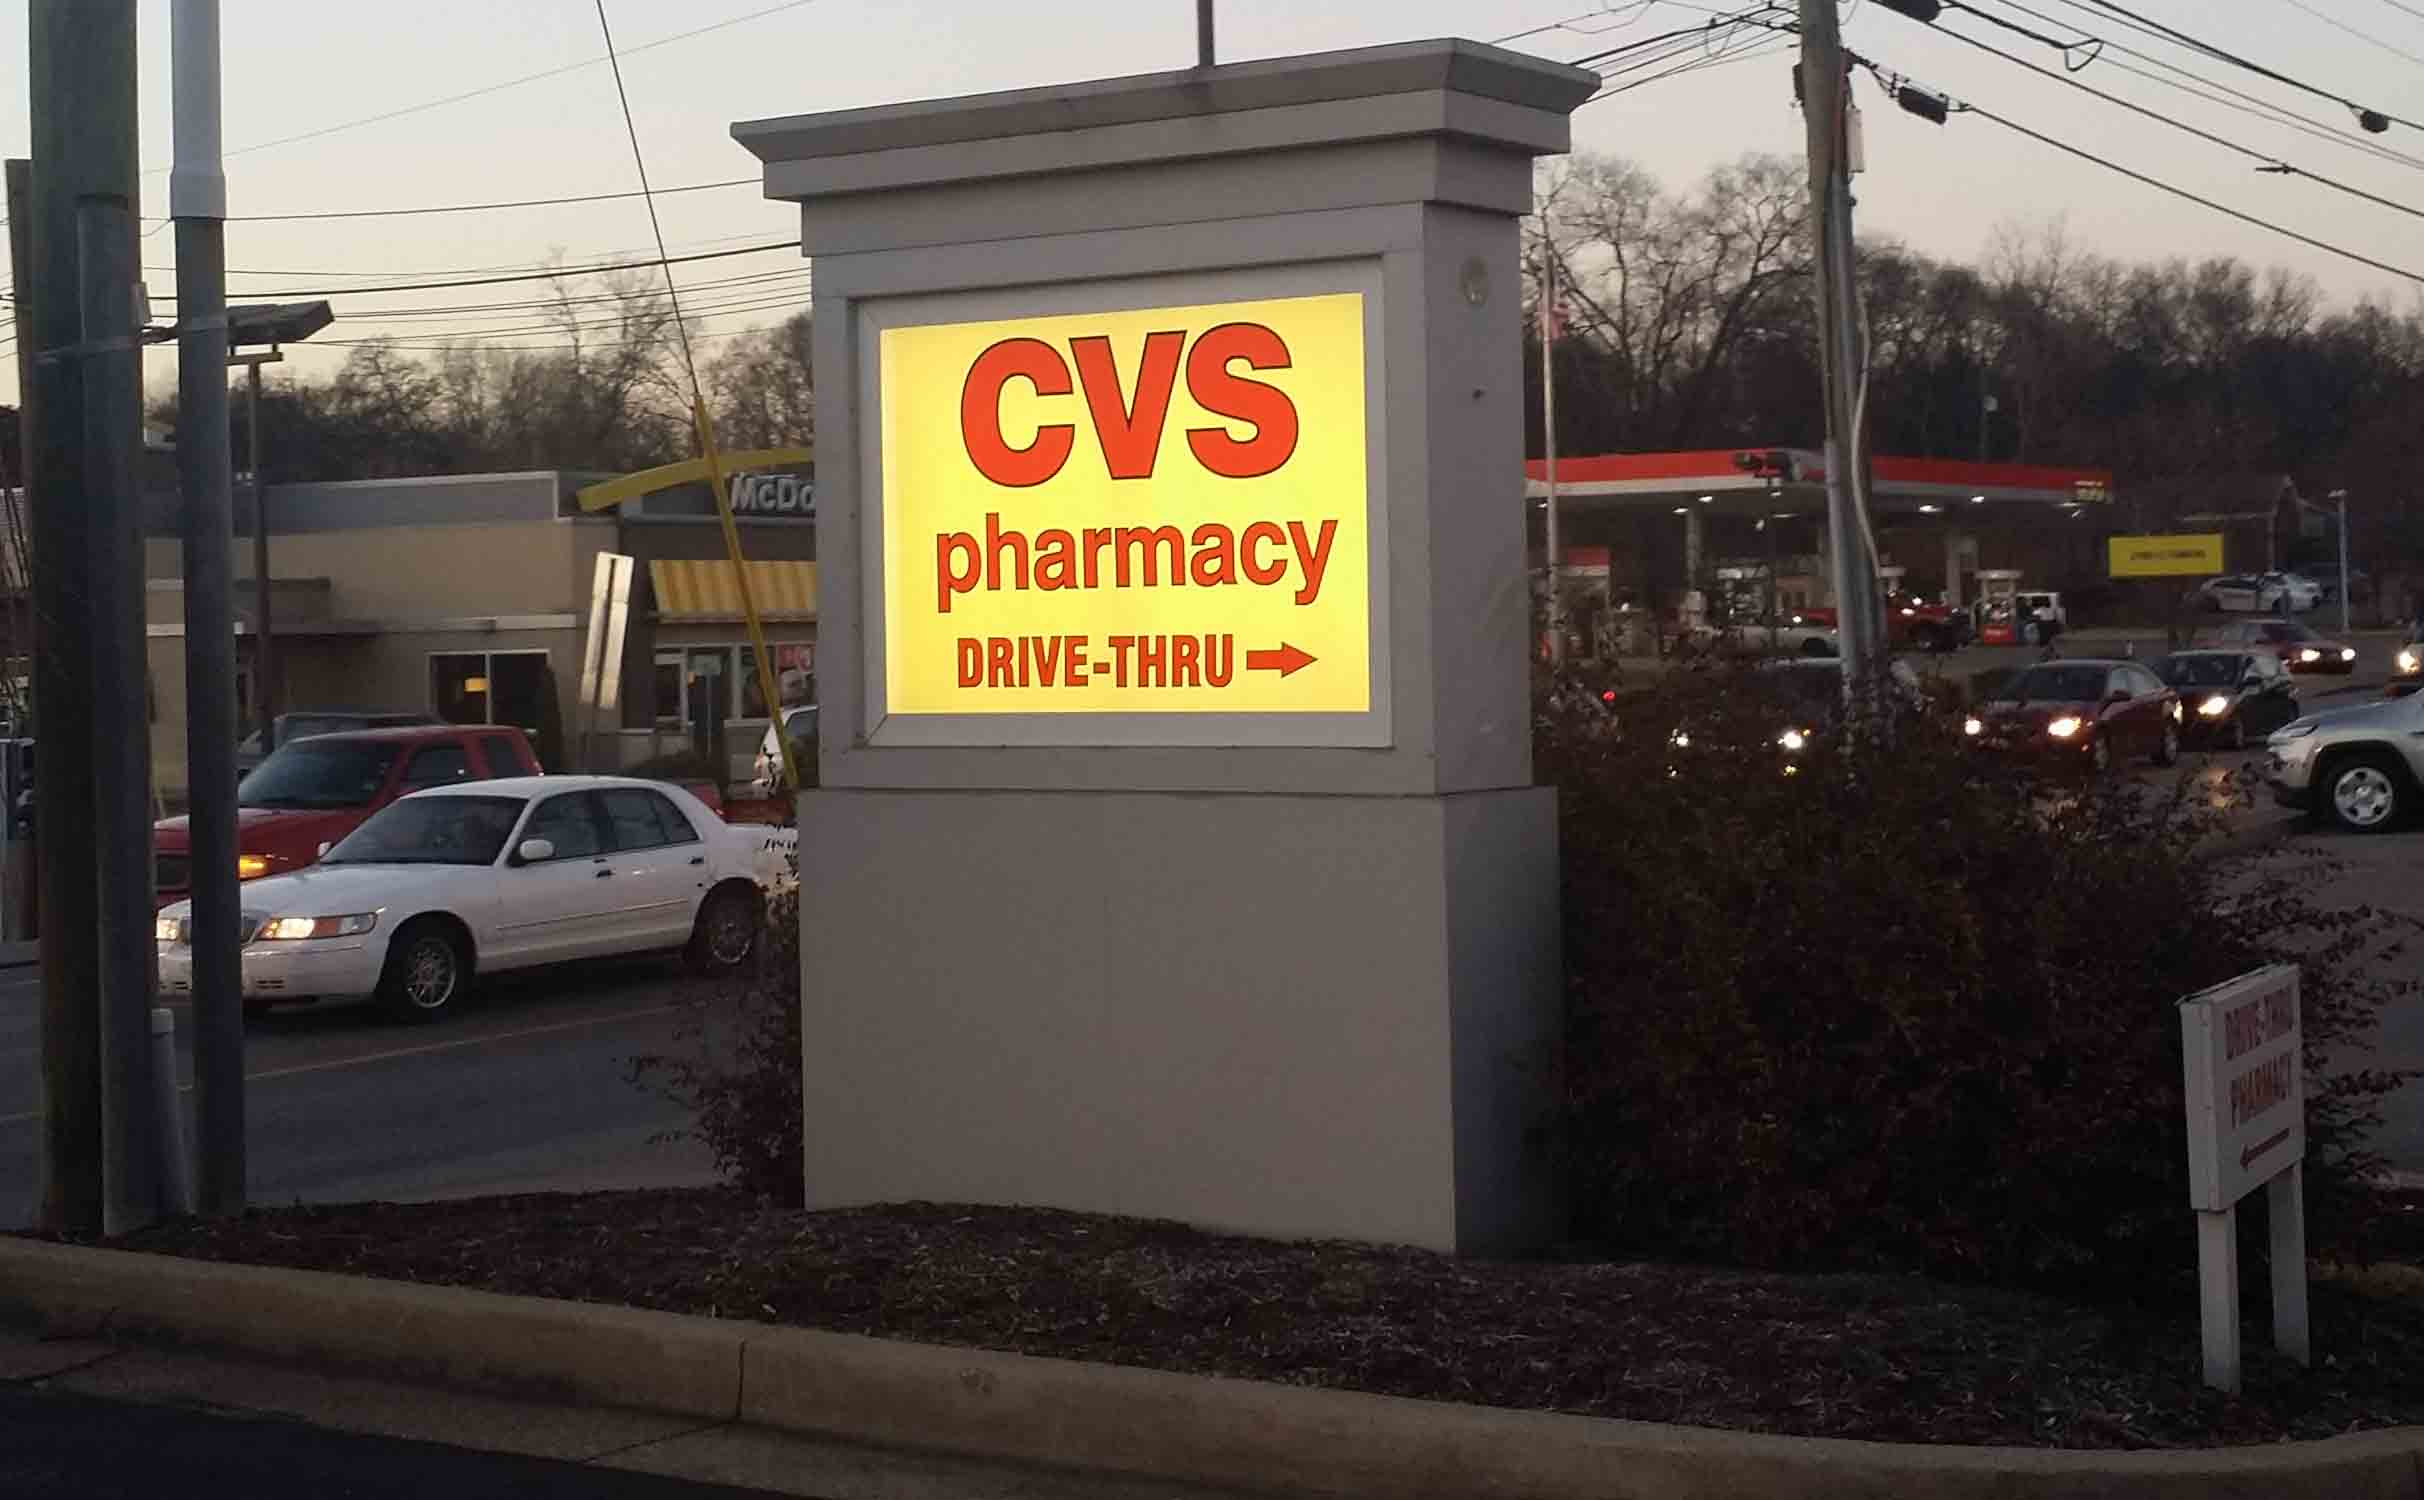 cvs pharmacy locations currently in nashville  tennessee